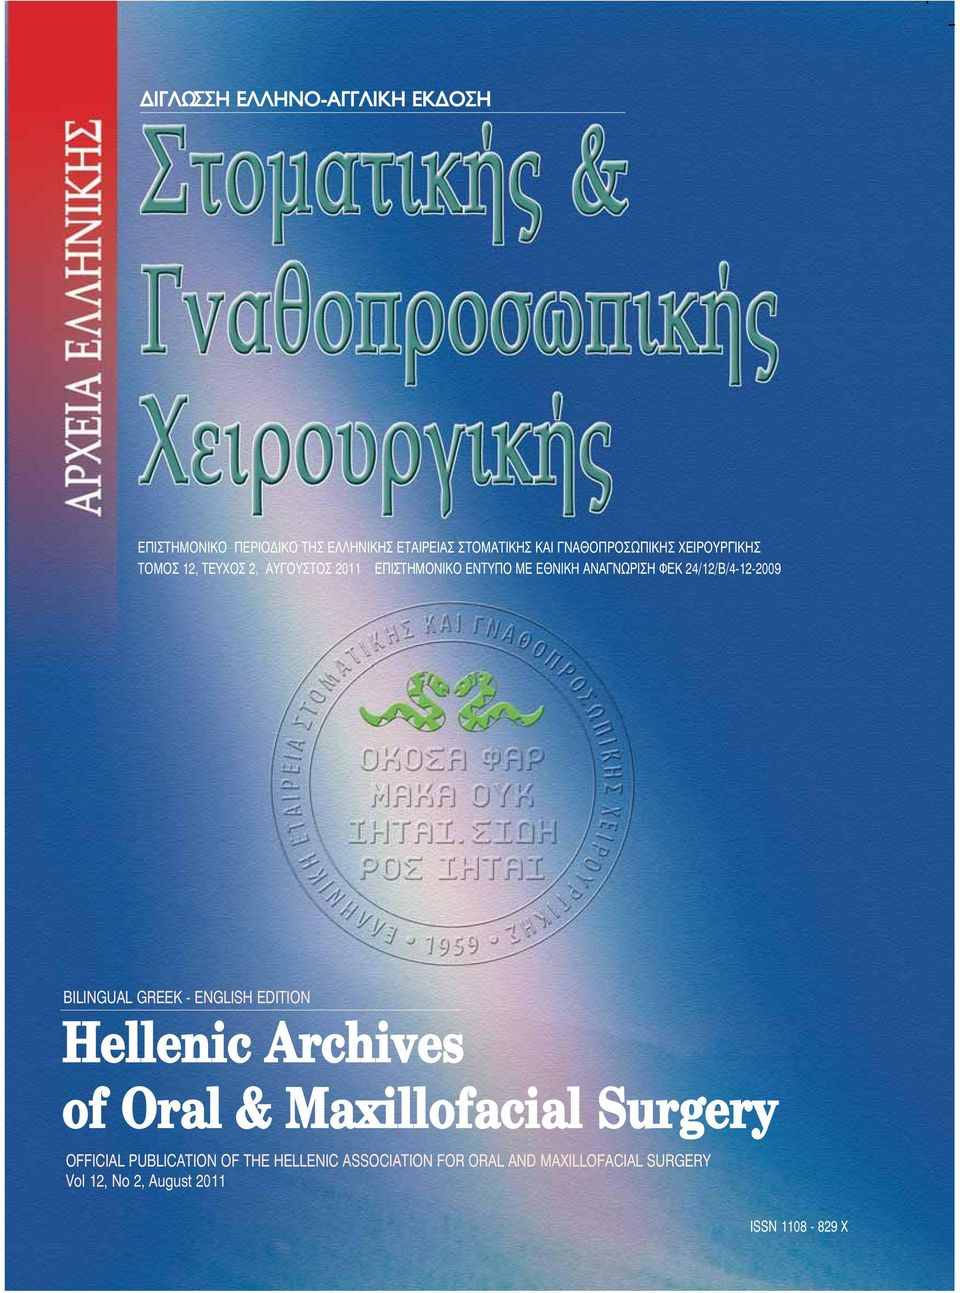 ΦΕΚ 24/12/Β/4-12-29 ΒILINGUAL GREEK - ENGLISH EDITION Hellenic Archives of Oral & Maxillofacial Surgery